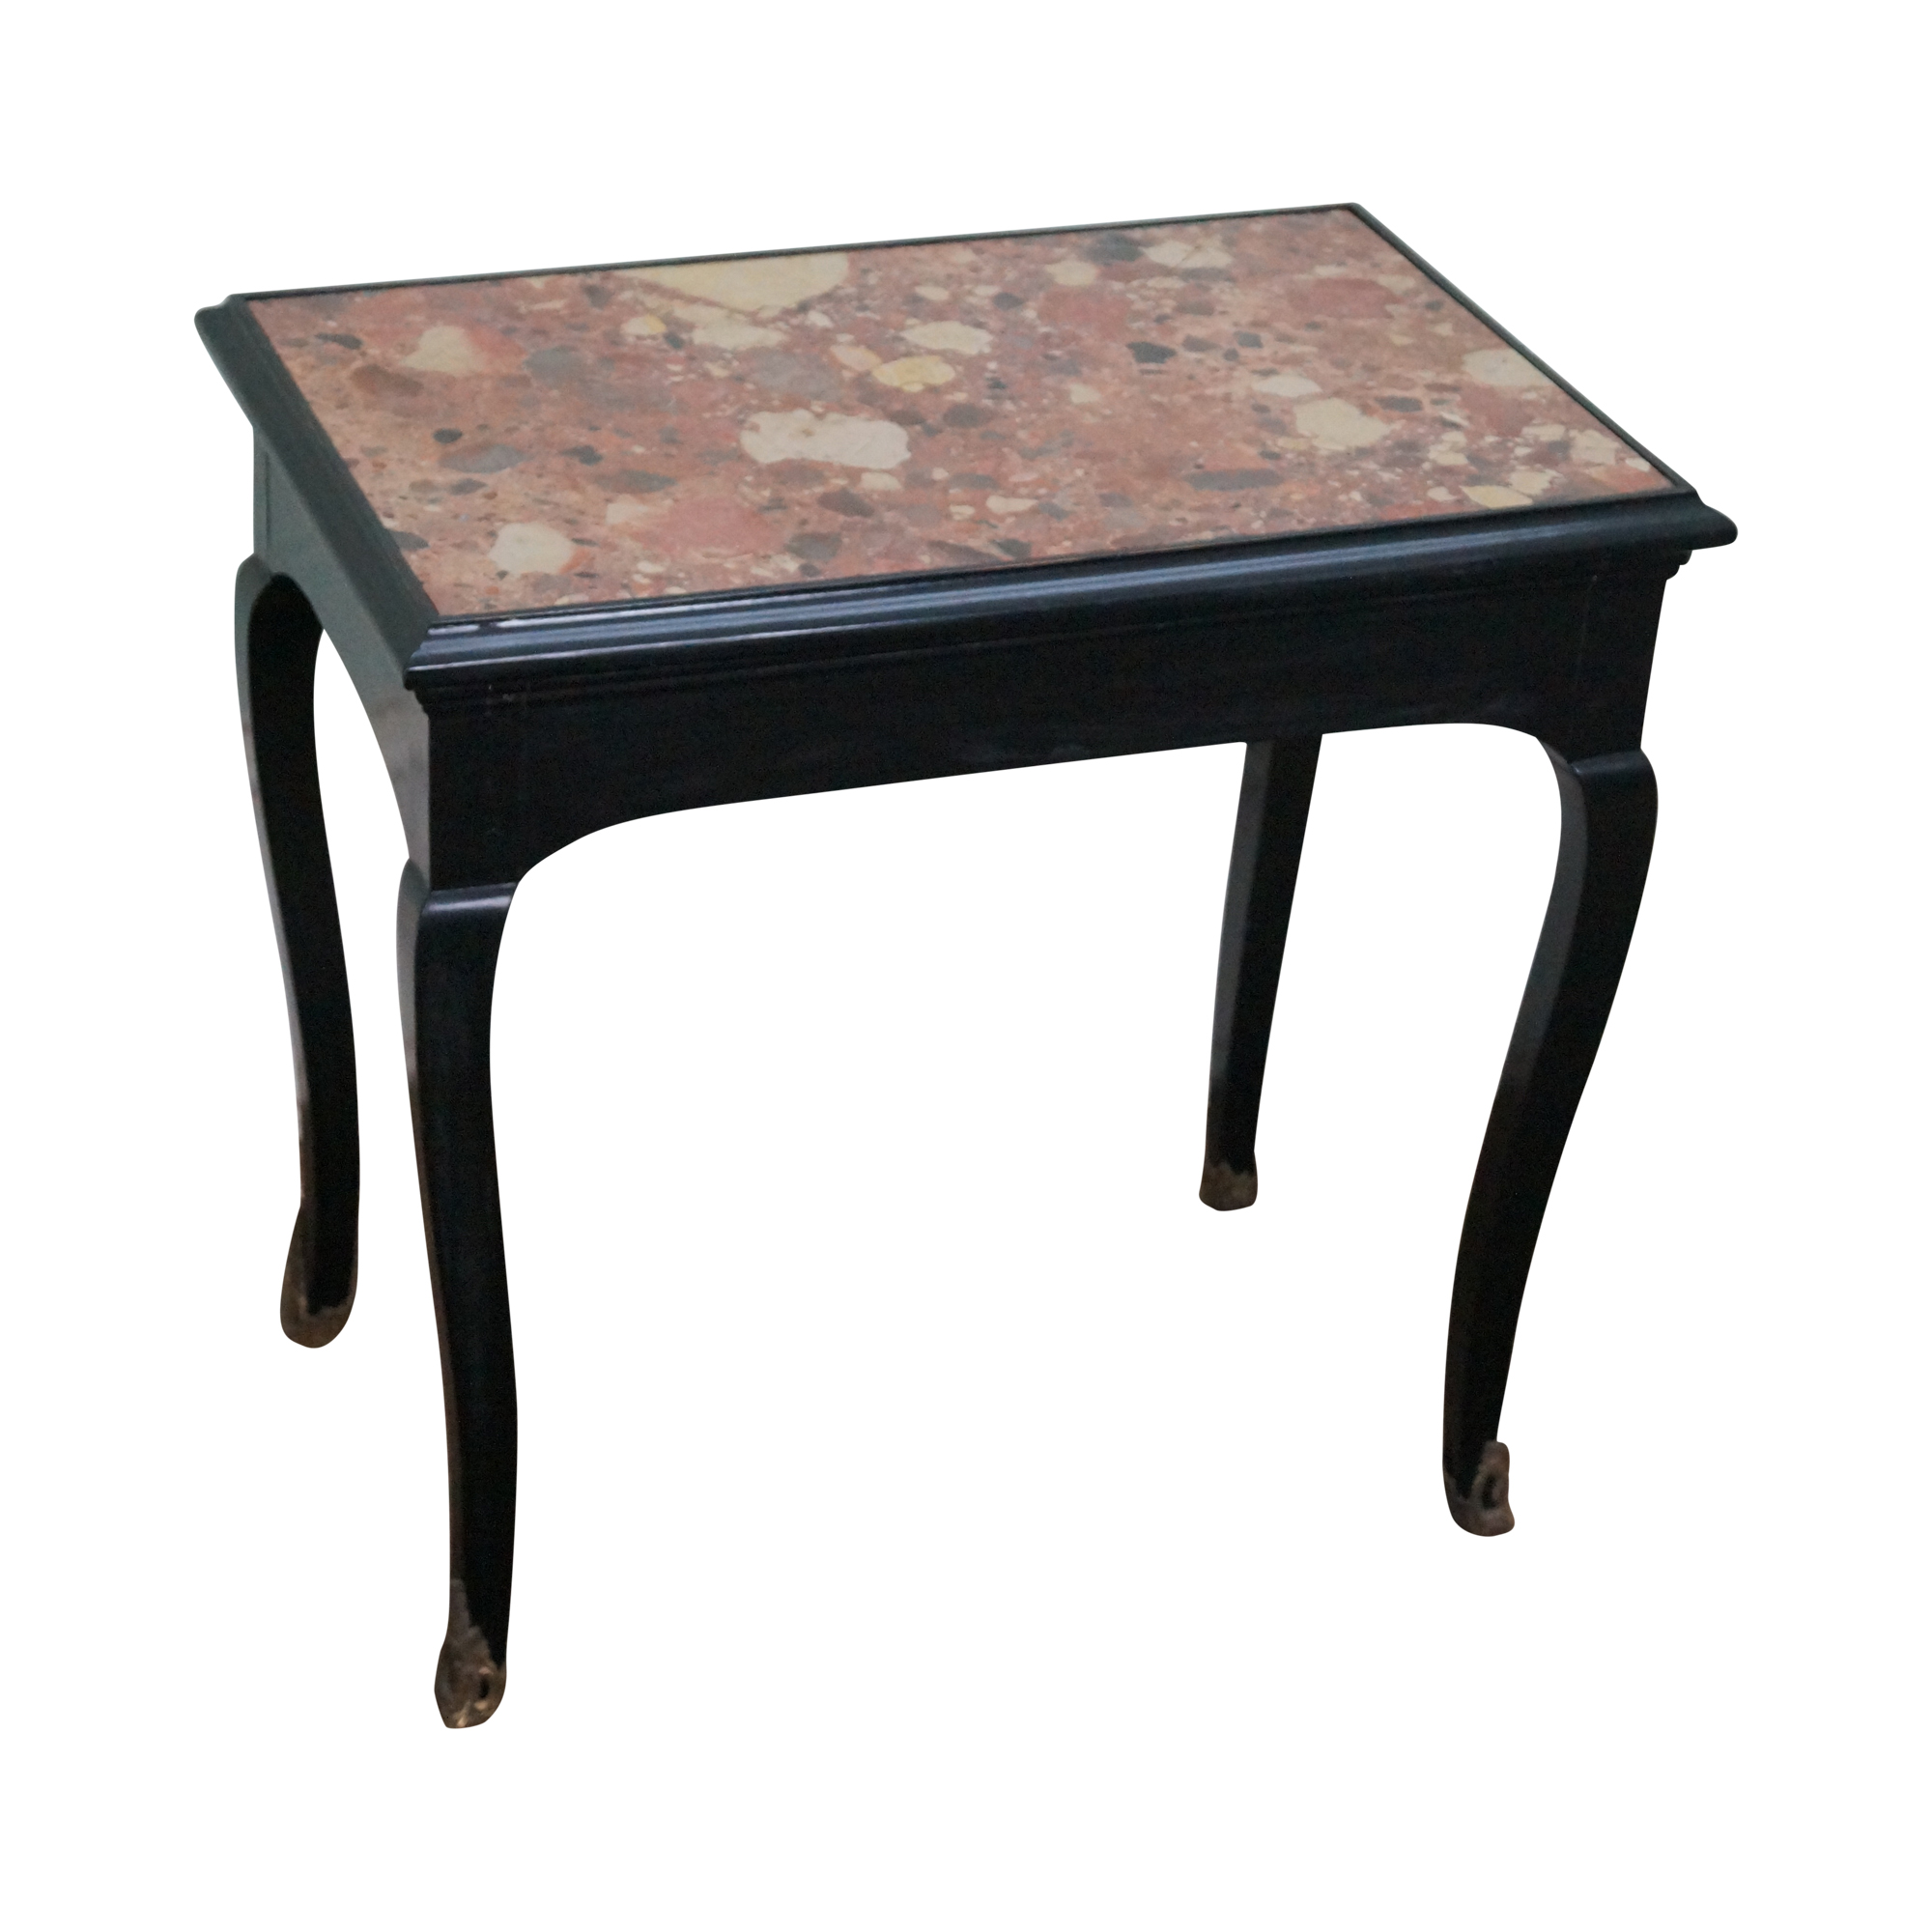 Antique french louis xv marble top side table chairish - Table de chevet louis xv ...